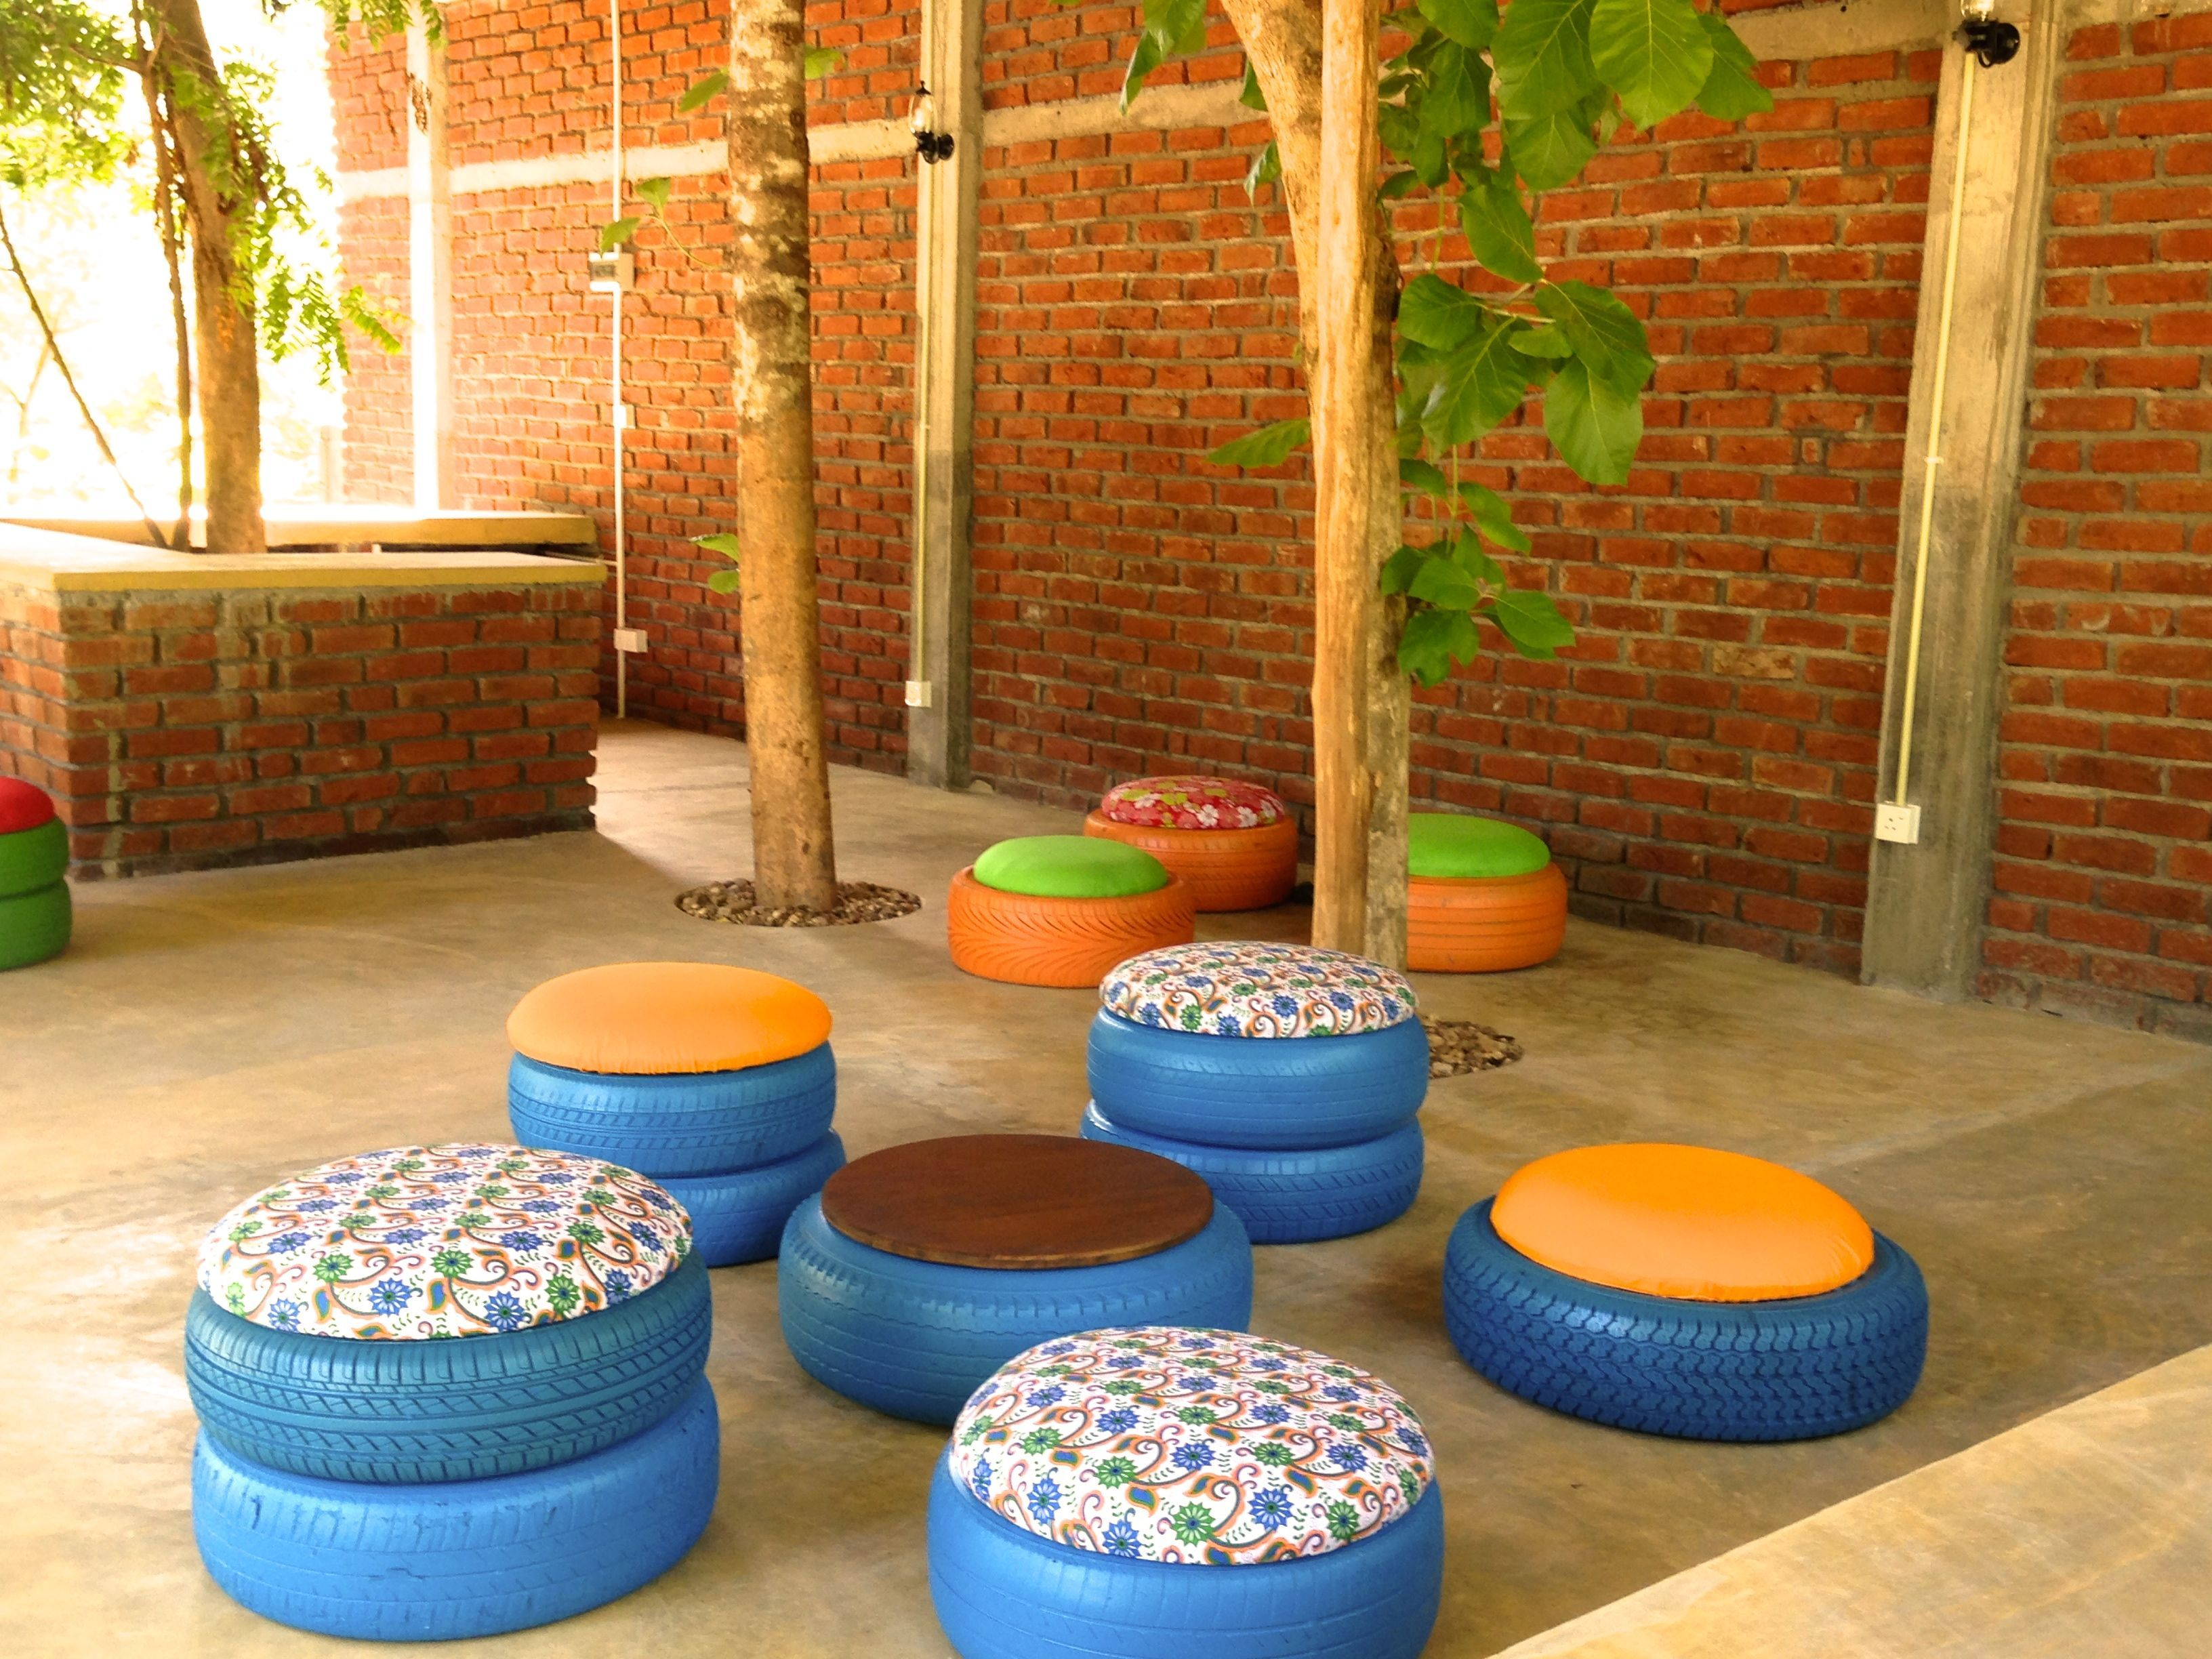 Upcycled Tyre Seats Tire Seats Cafe Interior Design Bar Design Restaurant